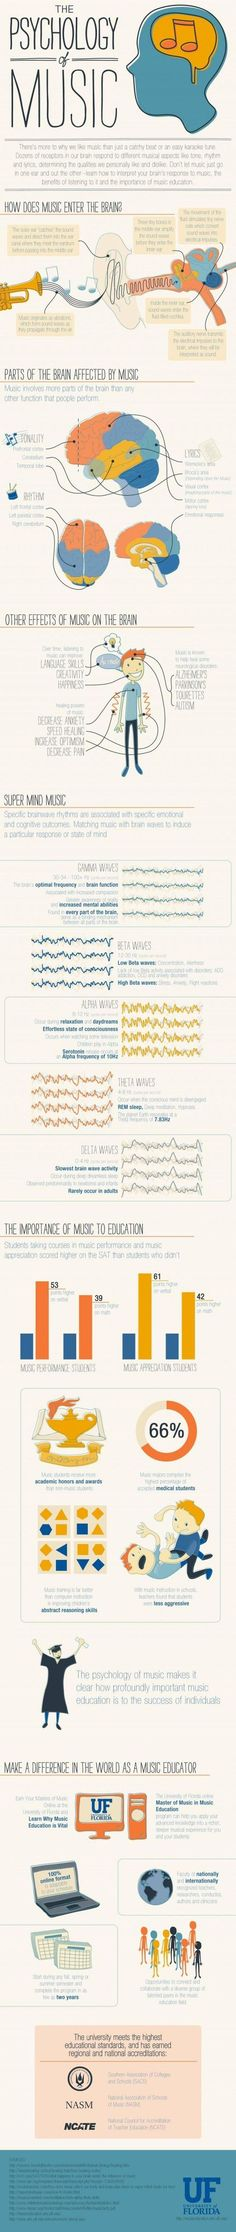 "The Psychology of Music and Its Effects on the Brain .... Follow for Free ""too-neat-not-to-keep"" teaching tools  other fun stuff :)"